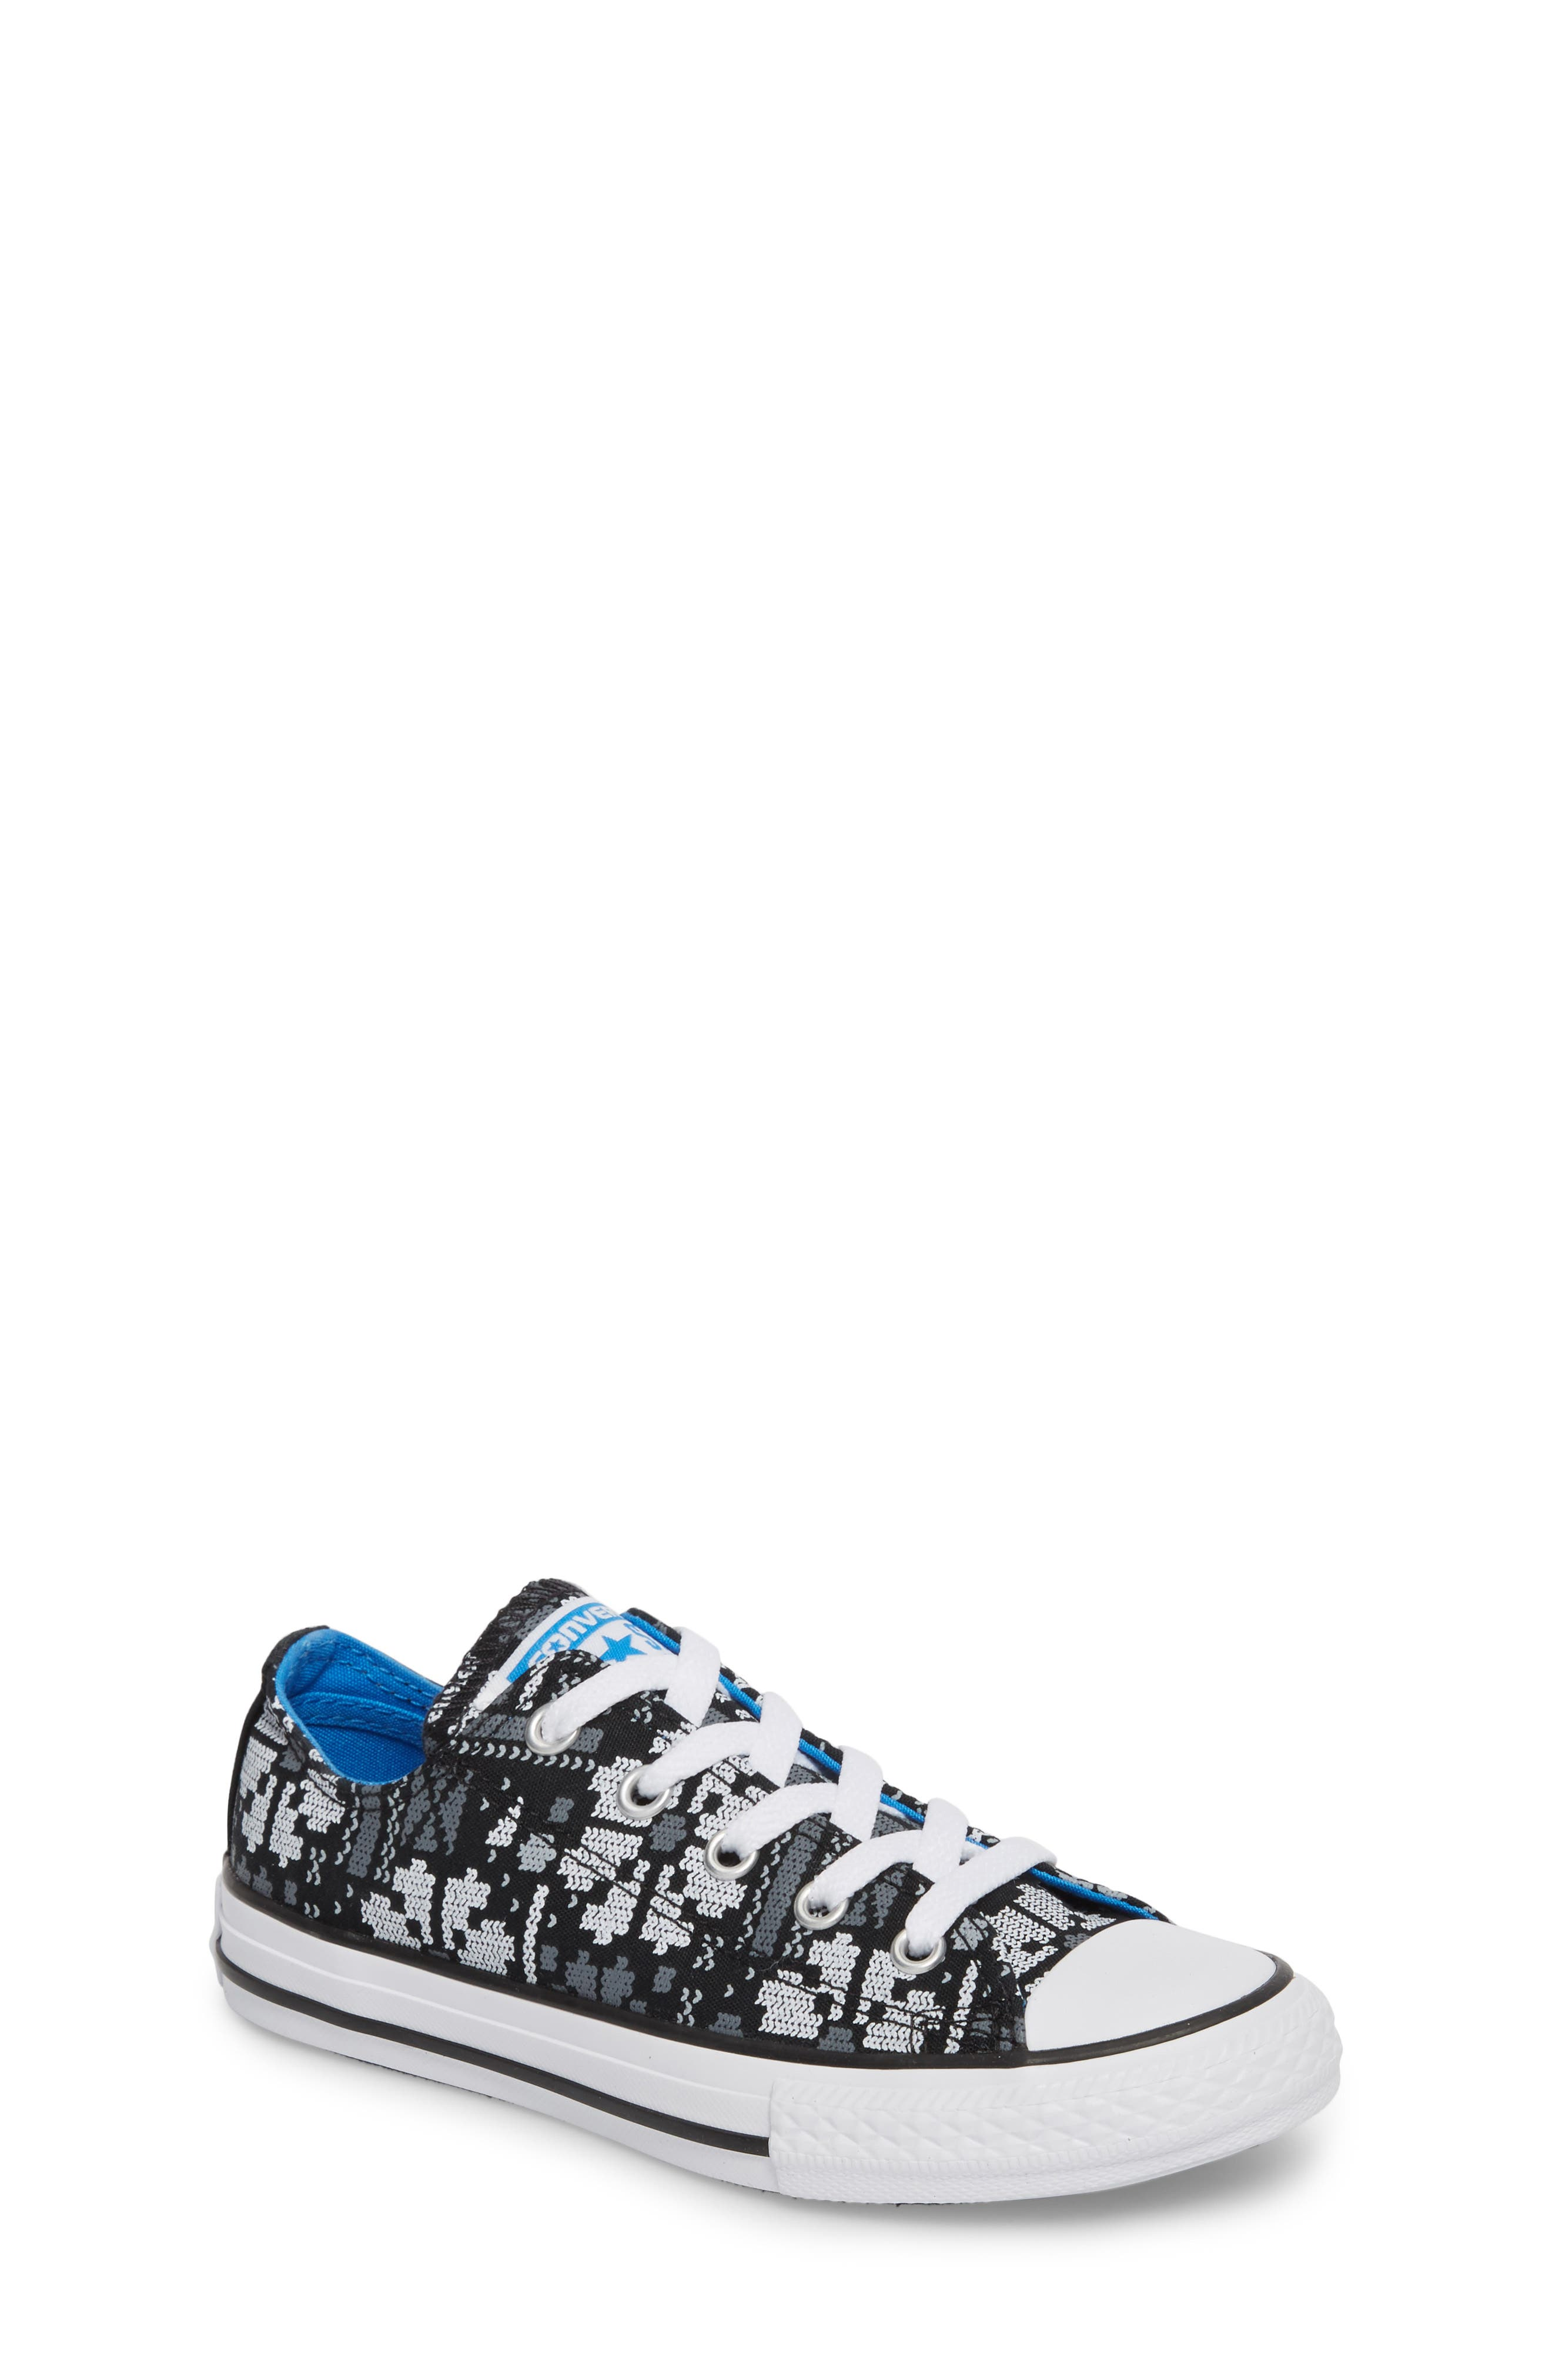 Alternate Image 1 Selected - Converse Chuck Taylor® All Star® Winter Ox Sneaker (Toddler, Little Kid & Big Kid)